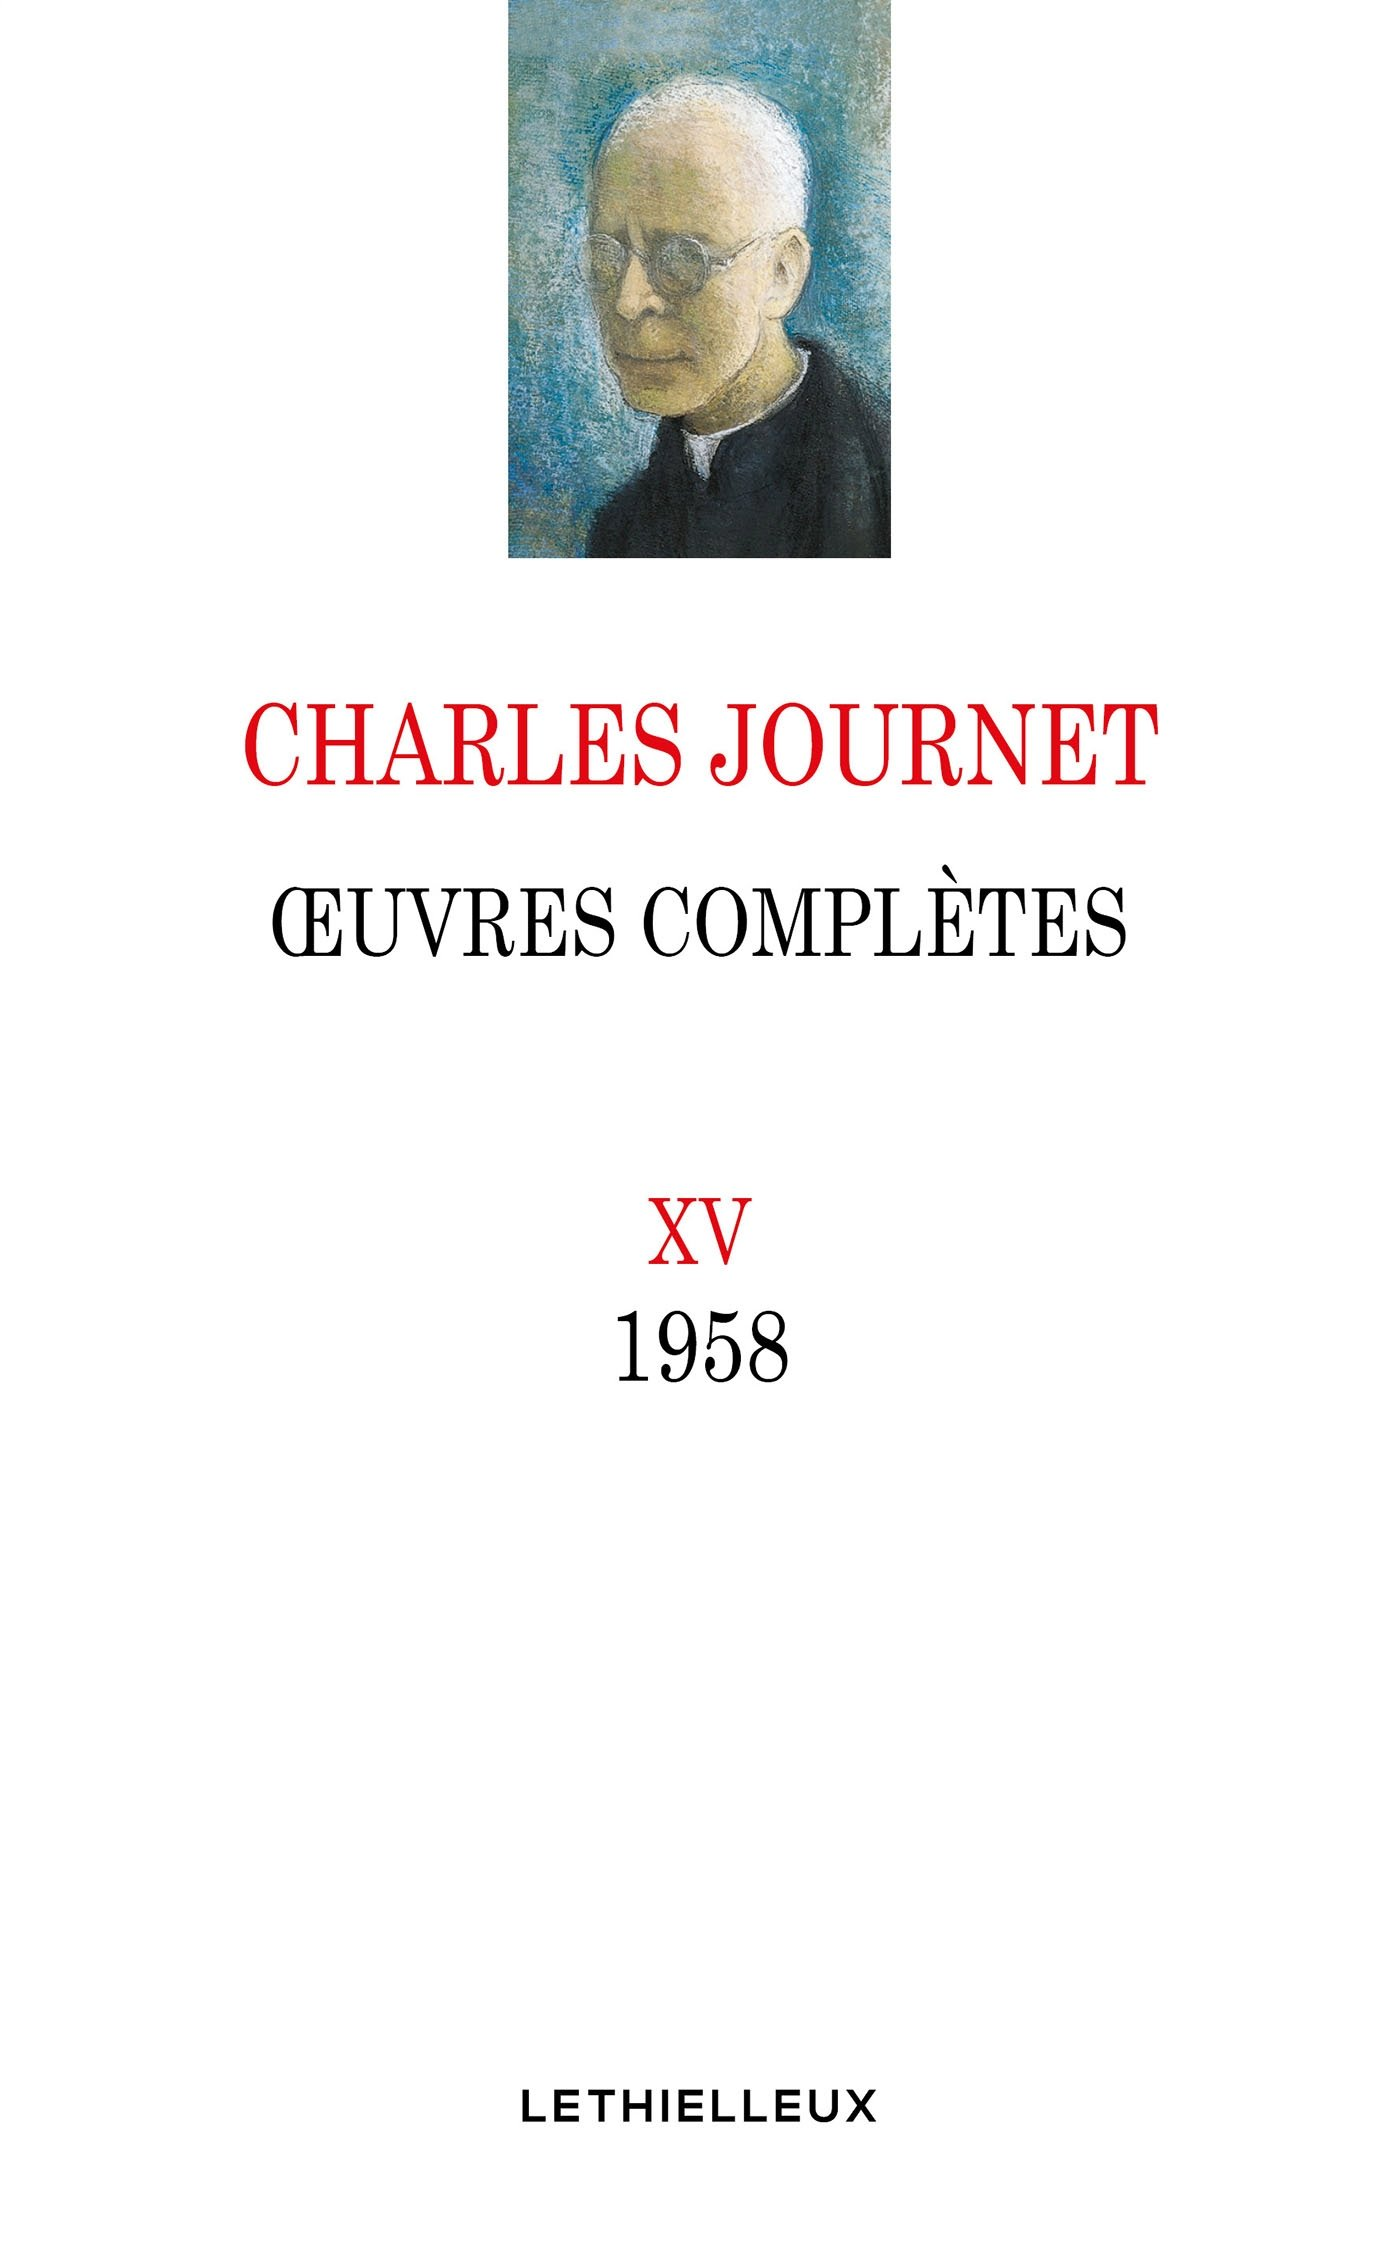 Download Oeuvres complètes, volume XV: 1958 ebook